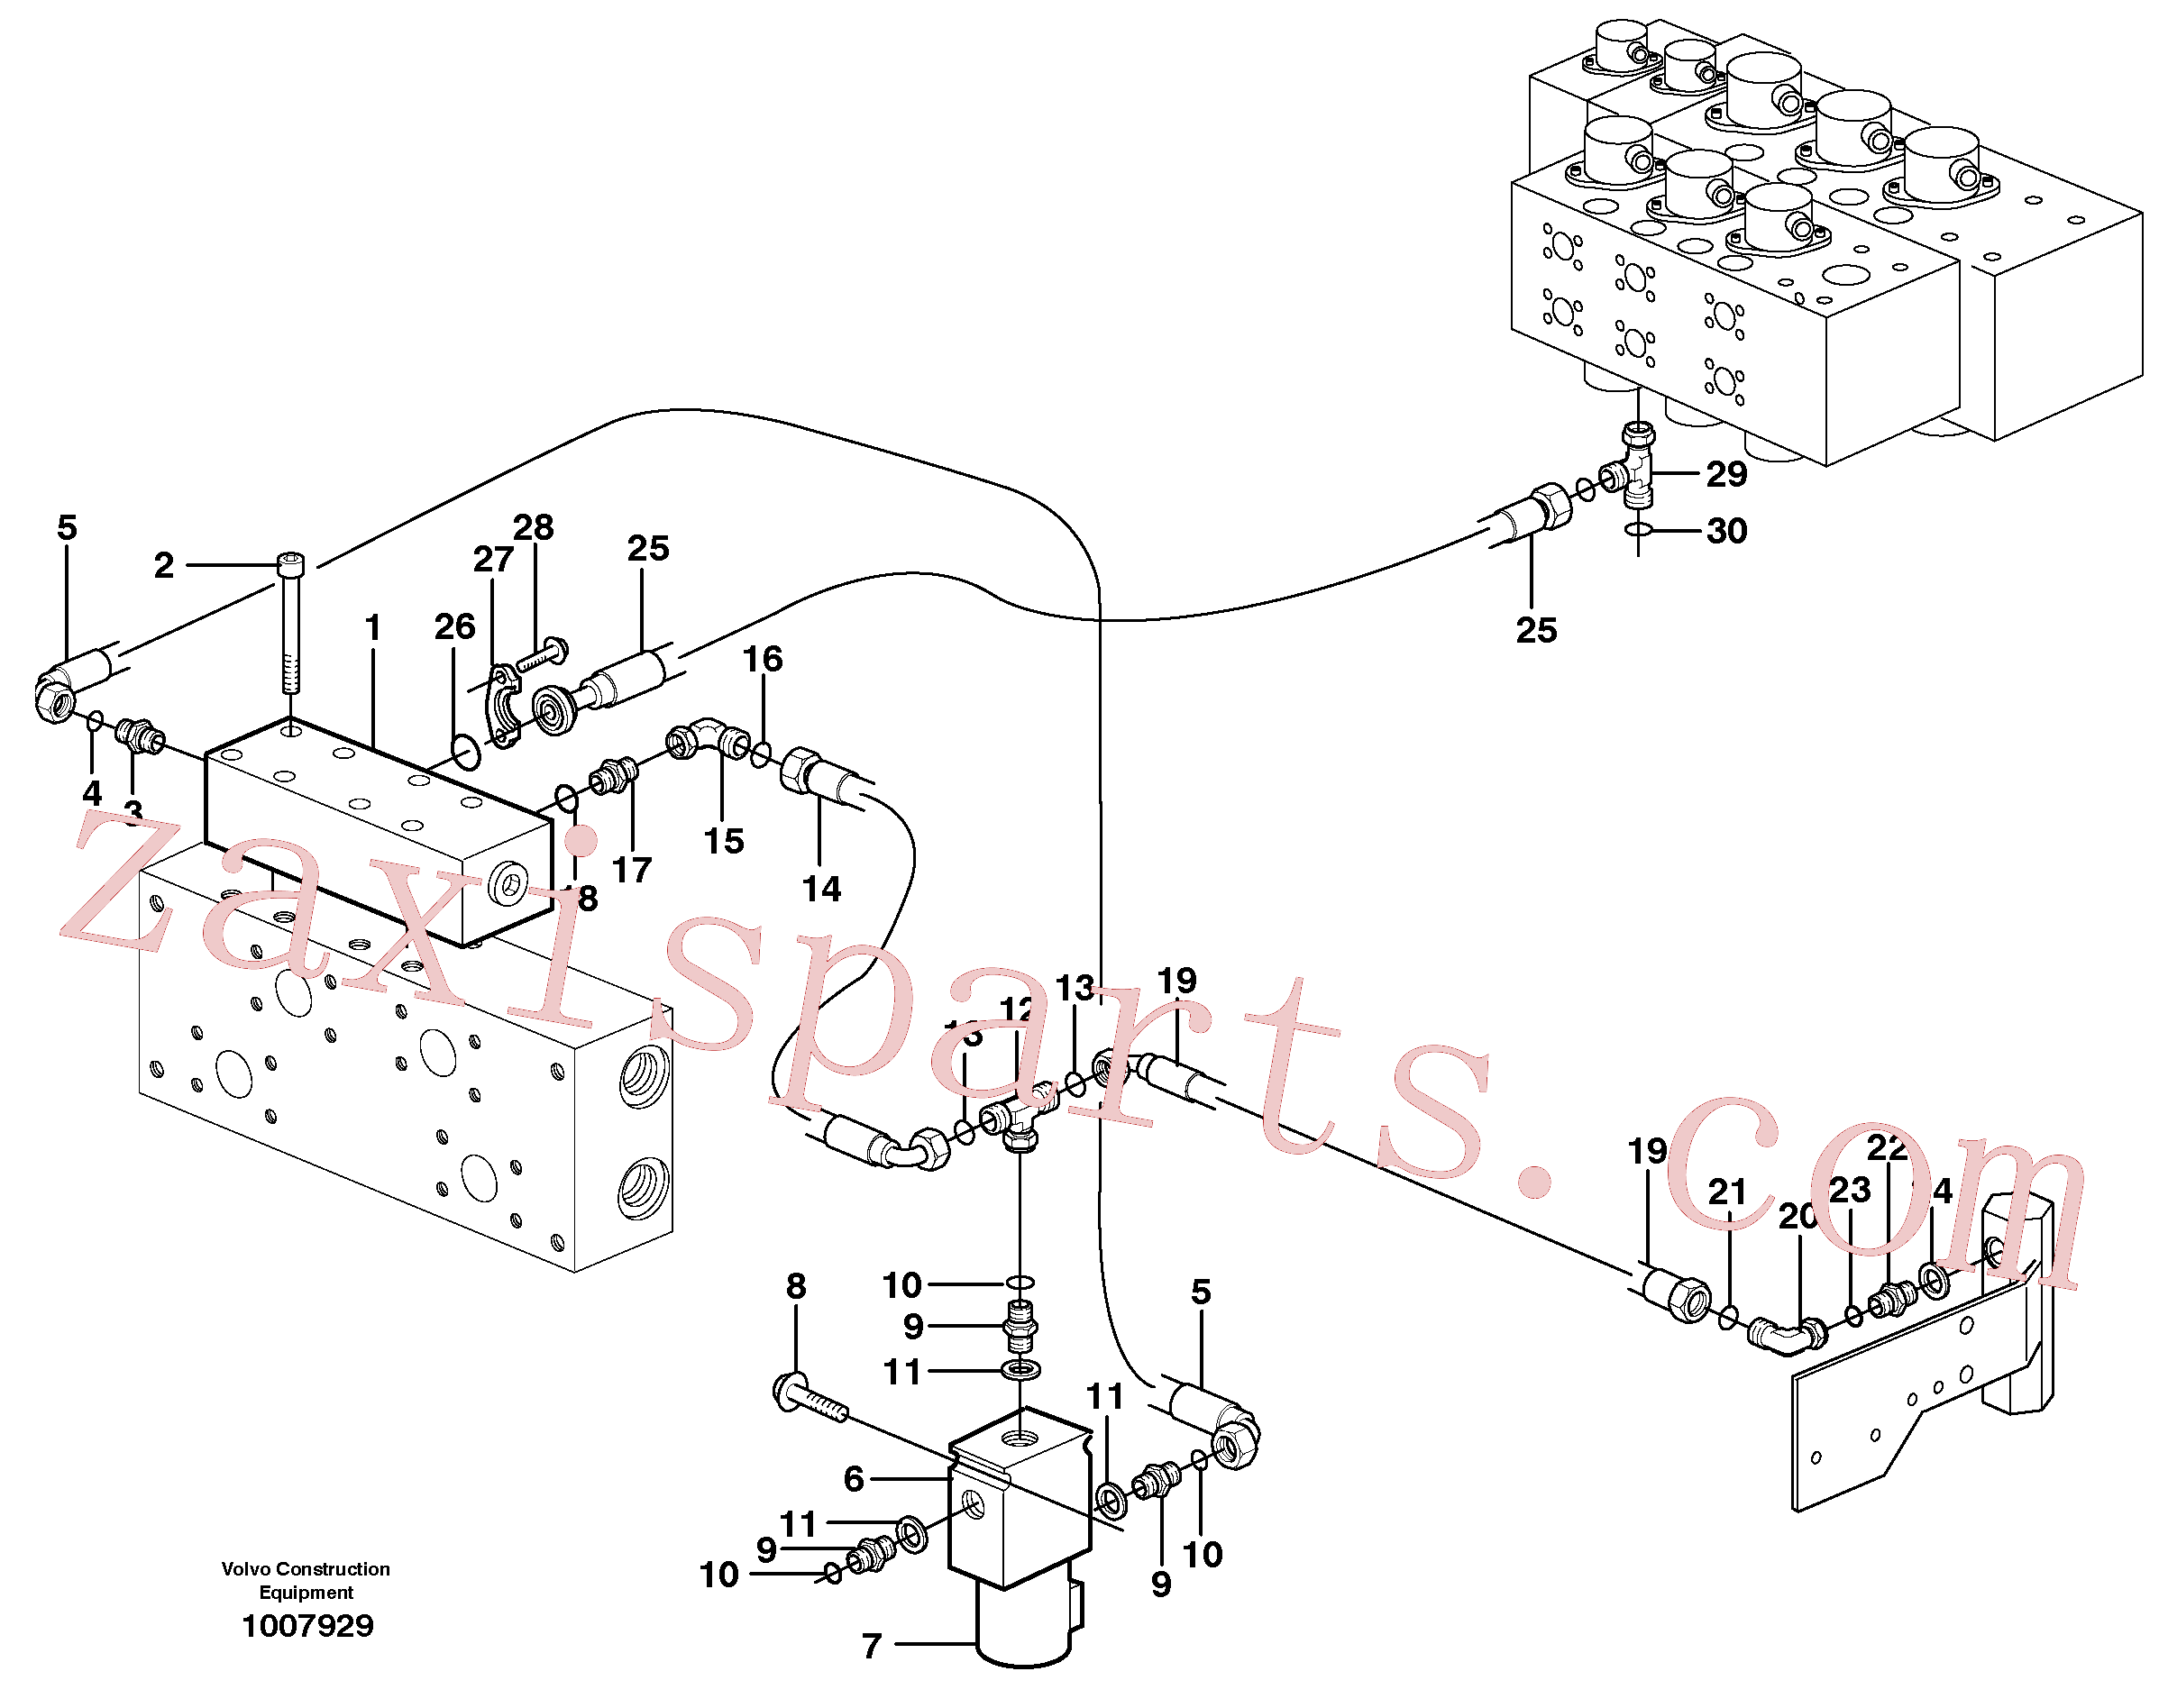 VOE14371747 for Volvo Hydraulic system, Float position valve(1007929 assembly)